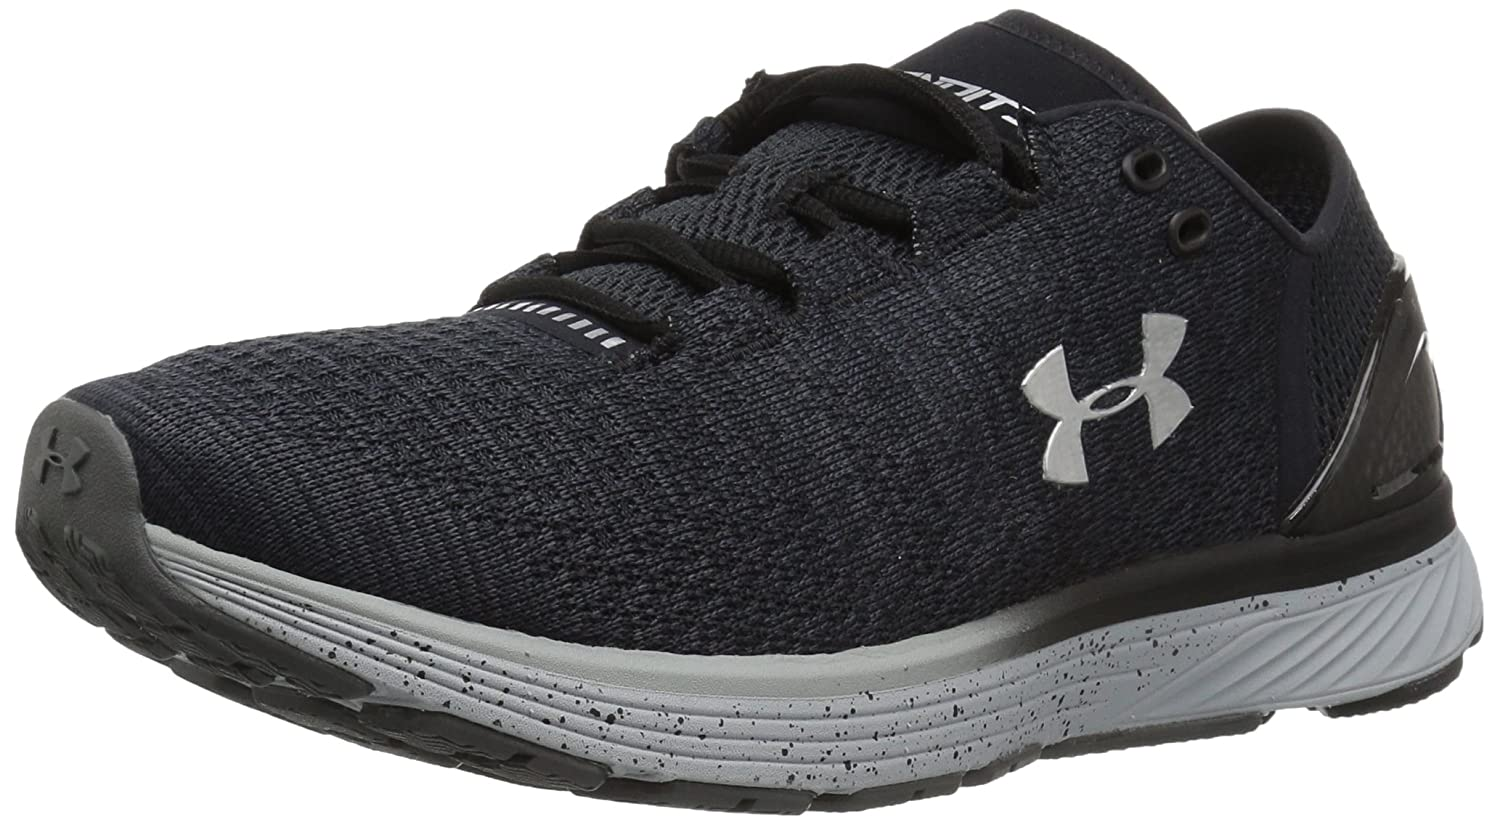 promo code f05cd c988d Under Armour Men's Charged Bandit 3 Running Shoe